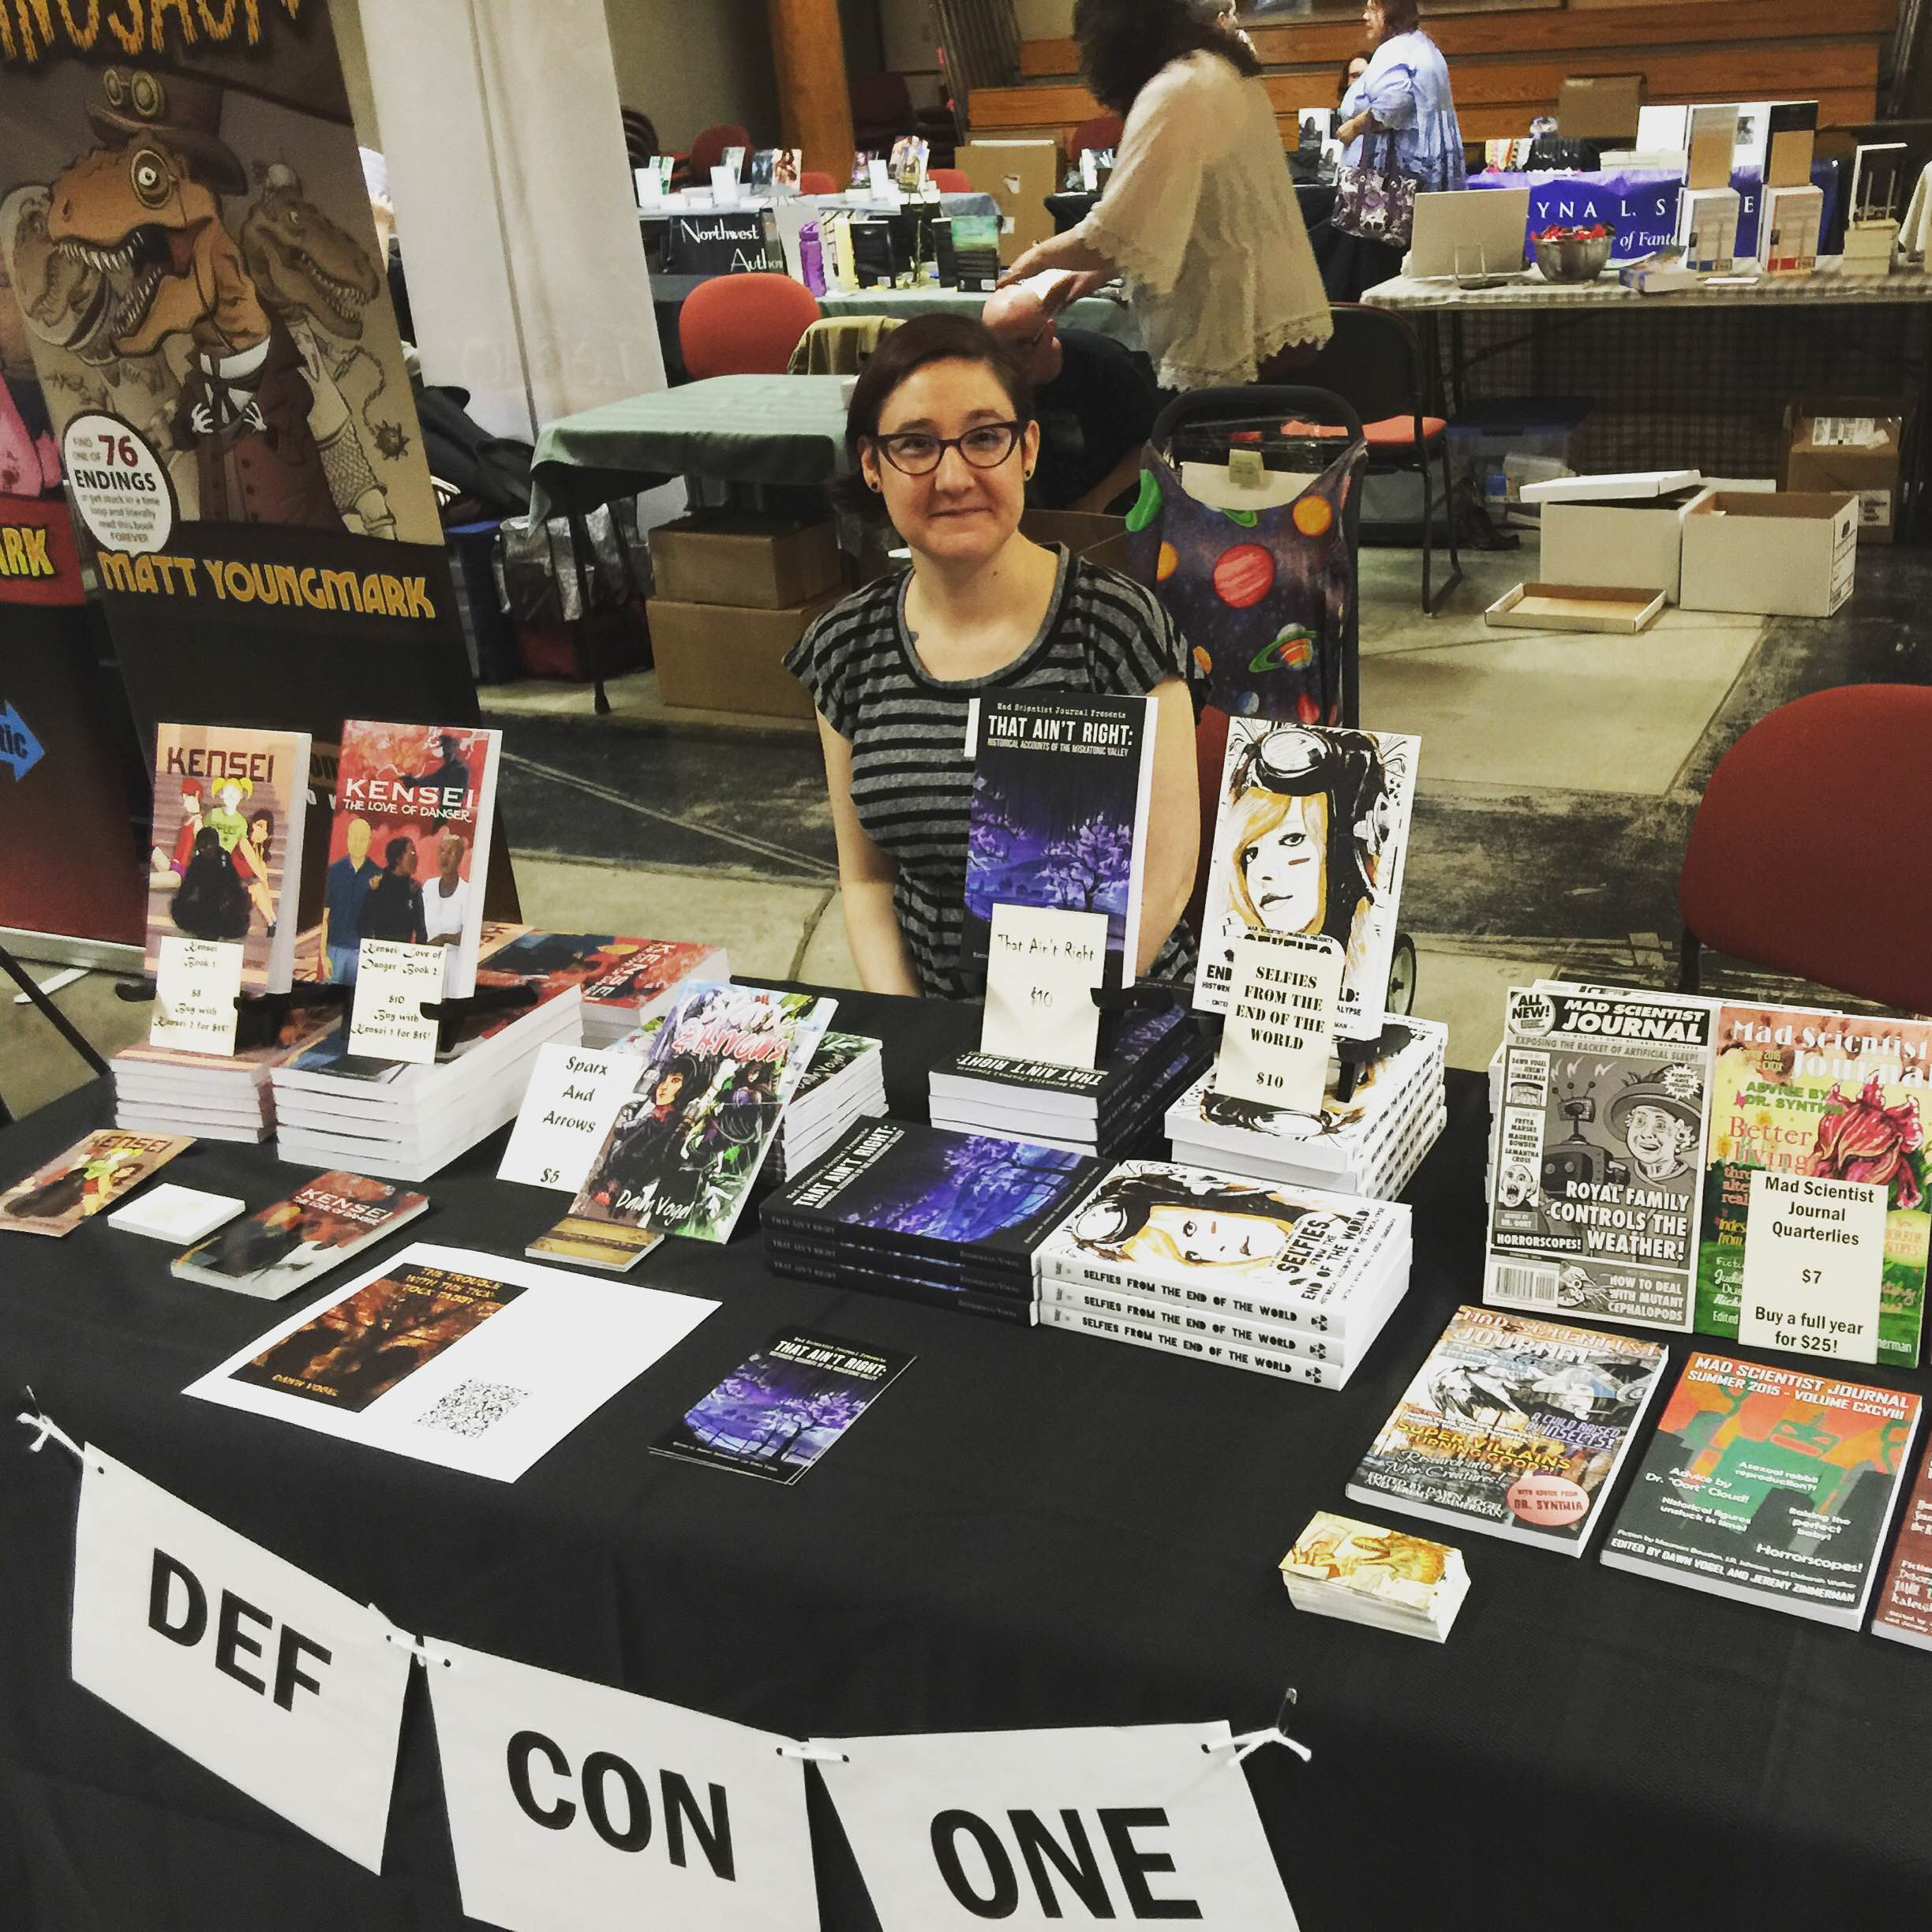 Our table at Capital Indie Book Con!